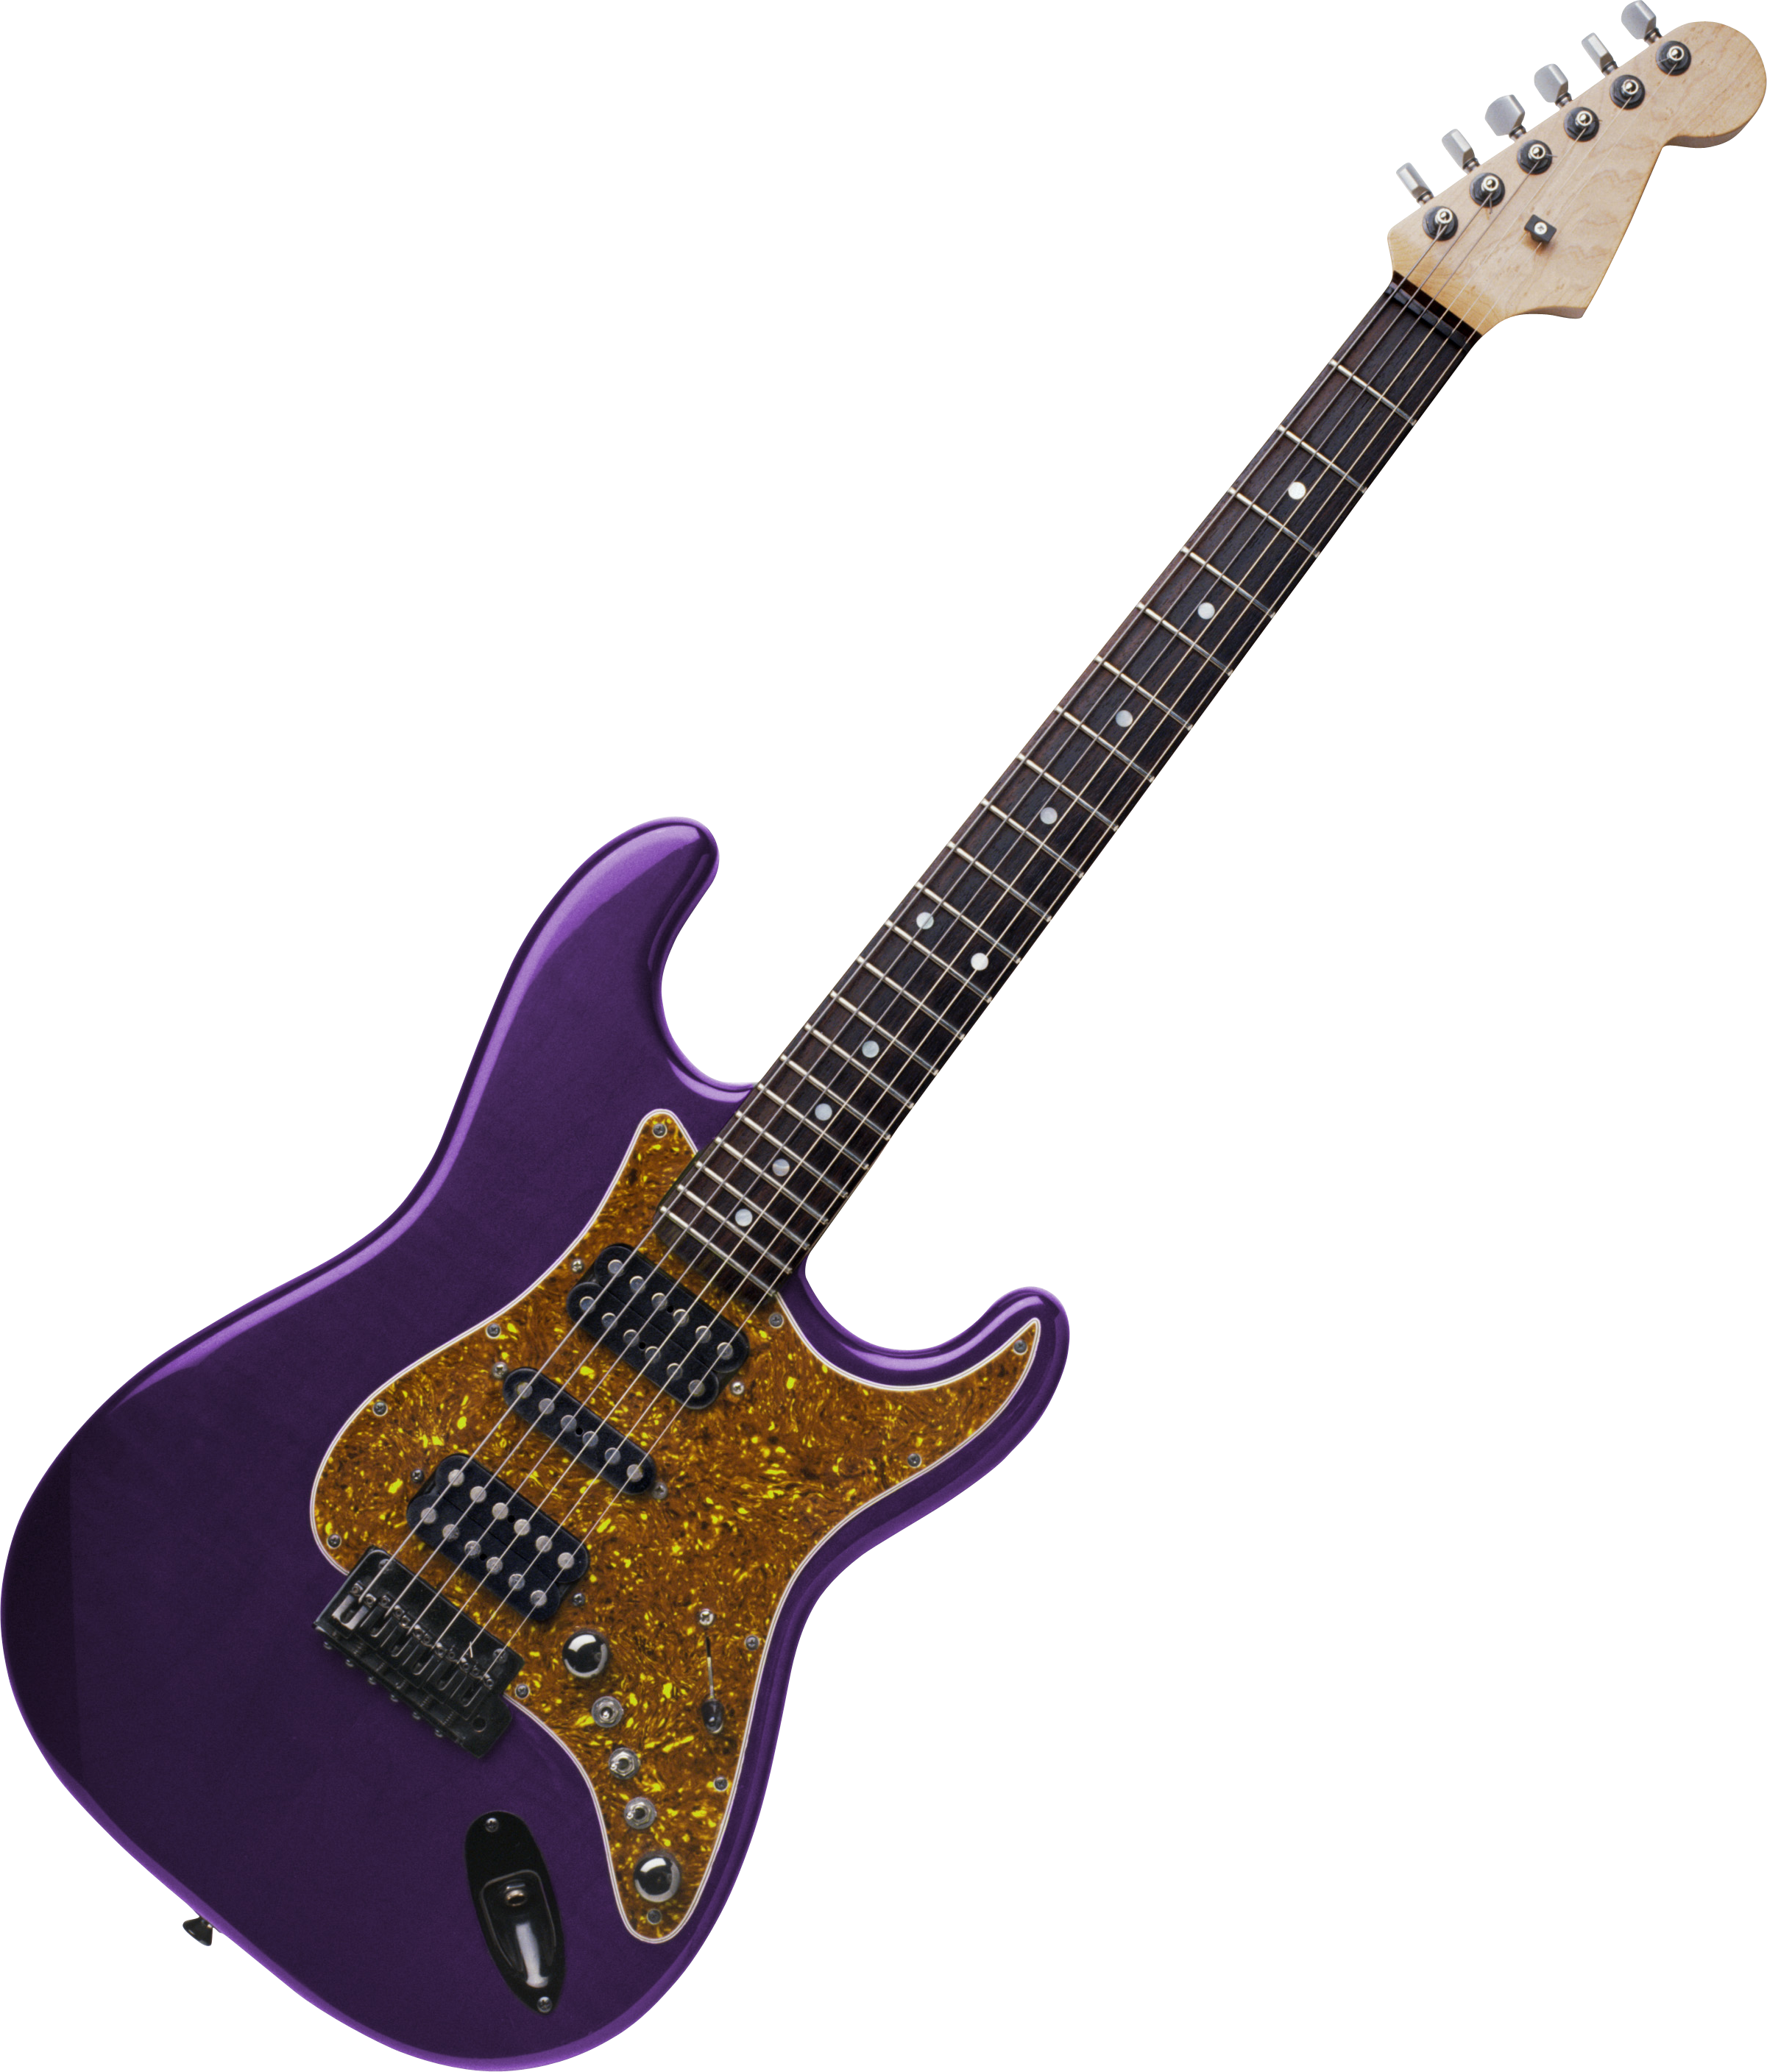 Electric guitar png. Images